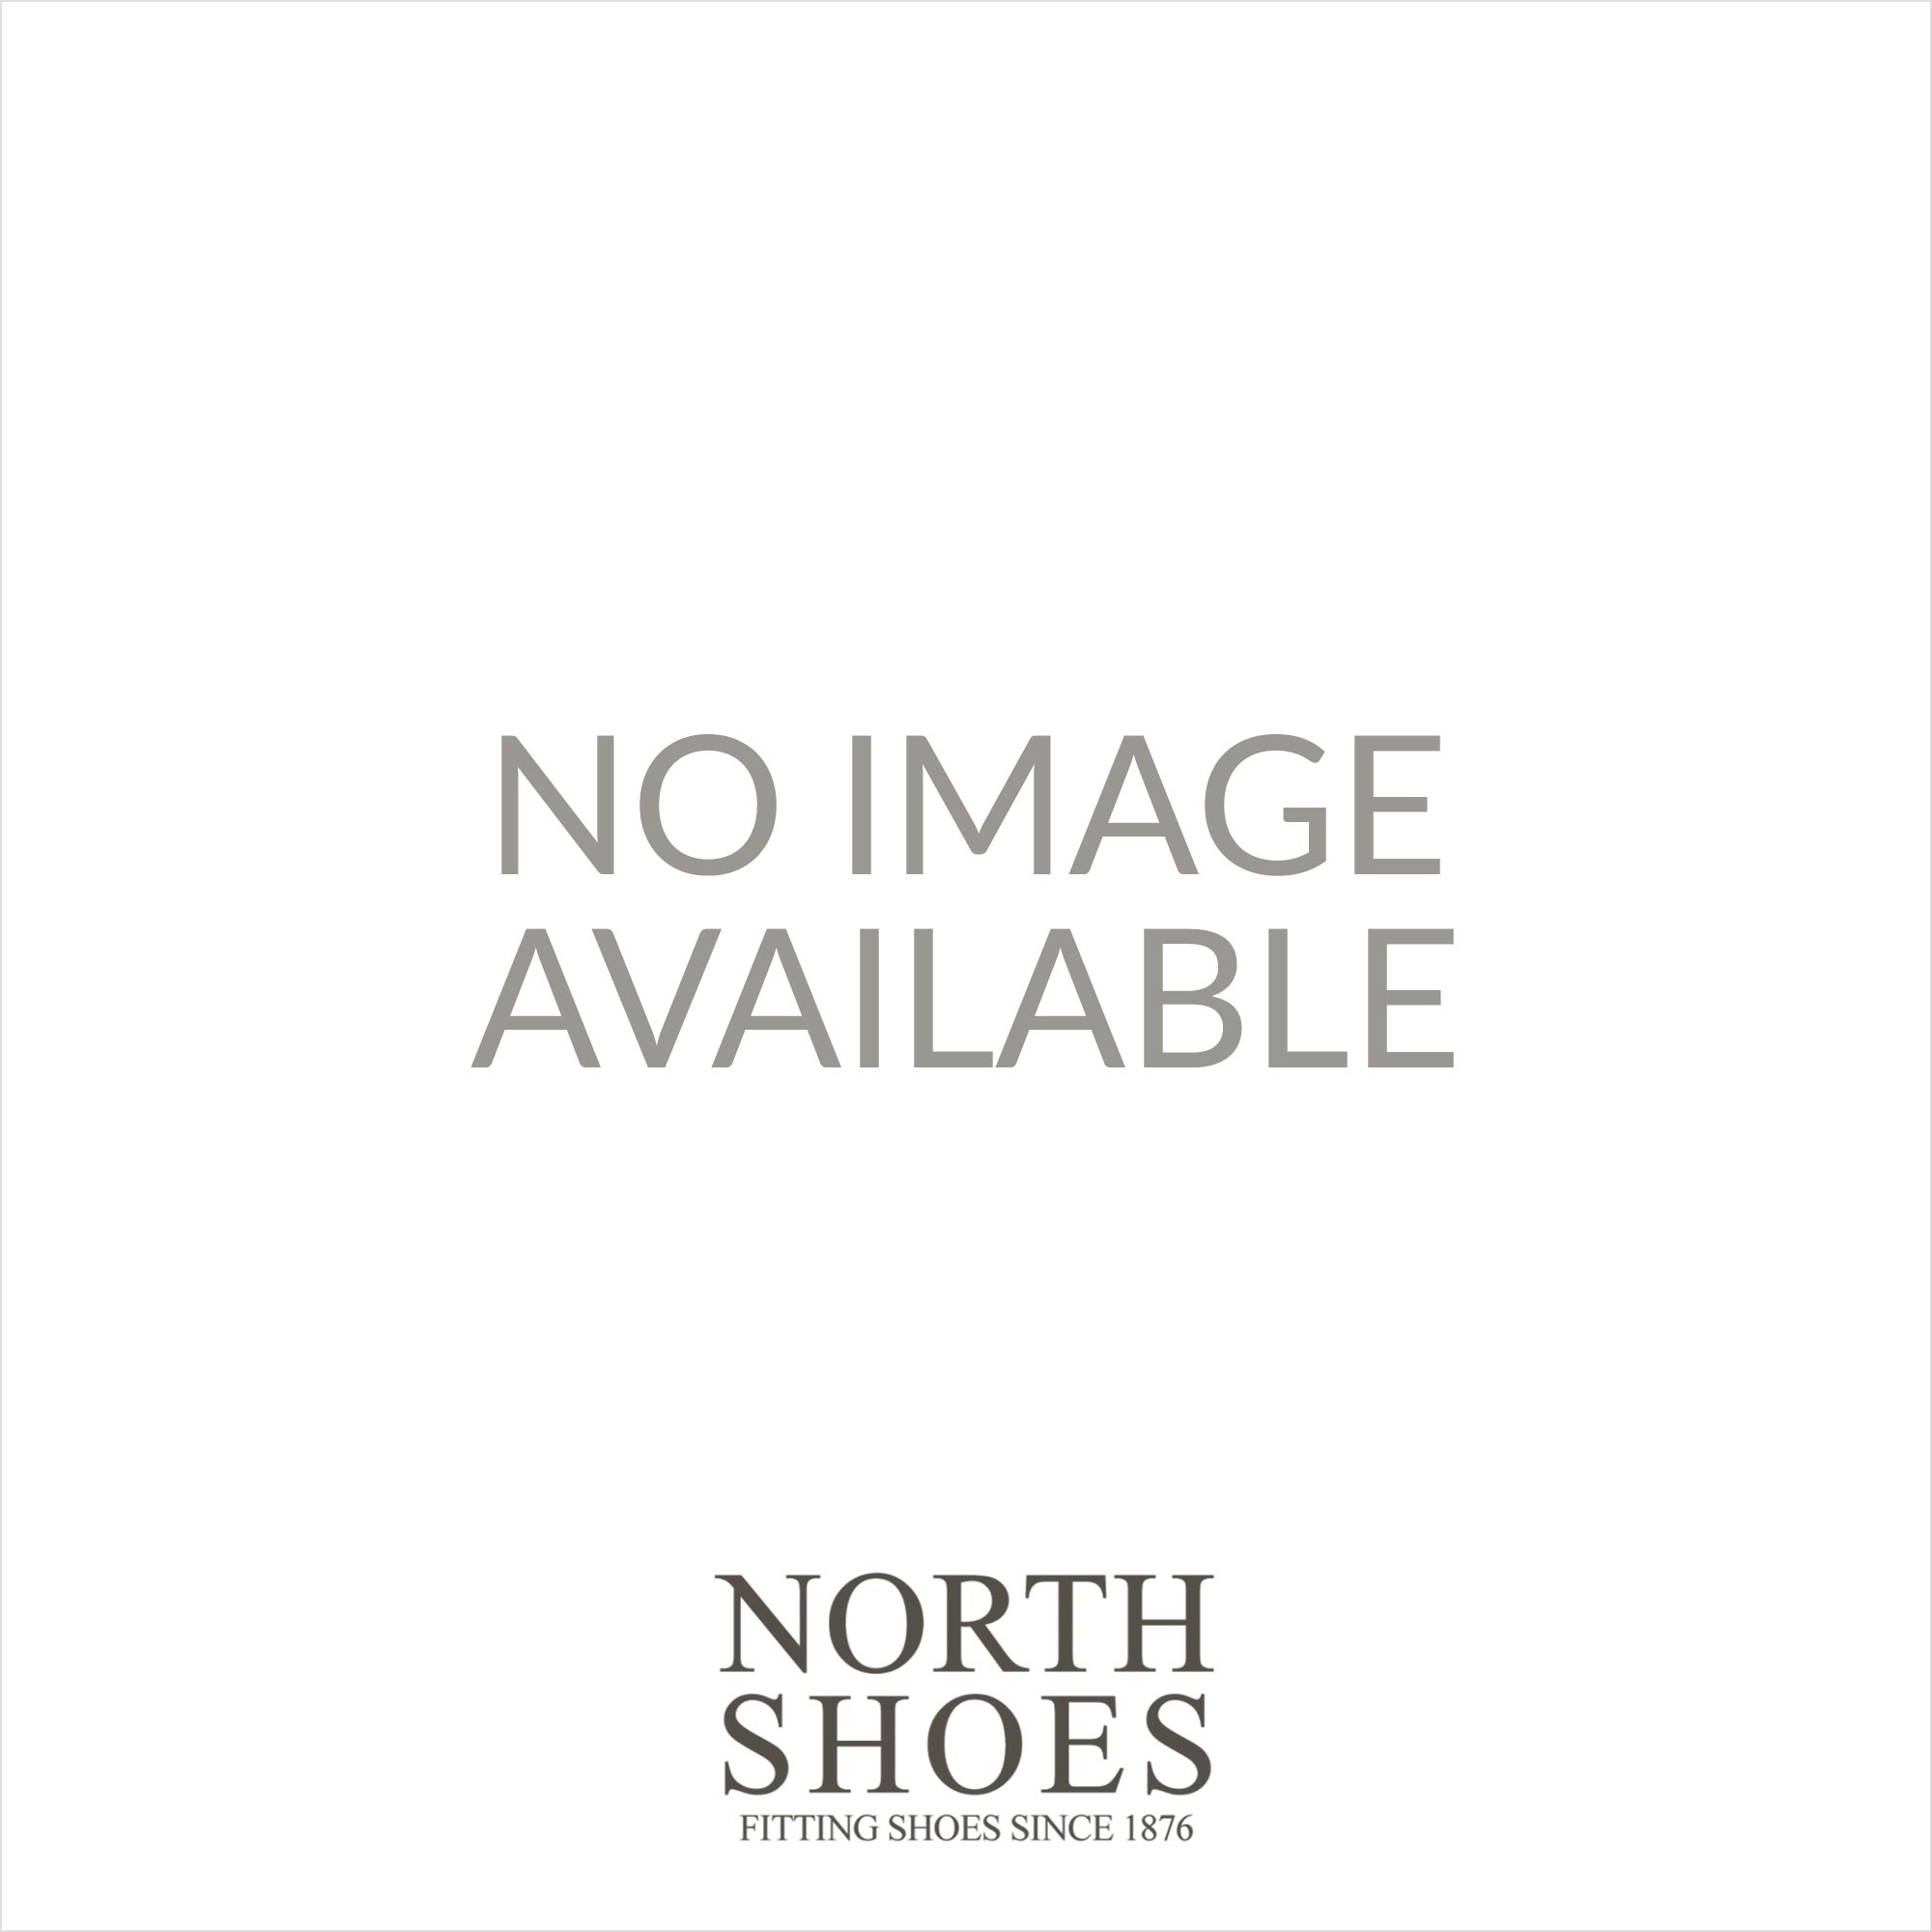 3f9f845c1d90 Converse Chuck Taylor All Star Ox Ombre 159525C Silver Glitter Canvas  Womens Lace Up Shoe - Converse from North Shoes UK